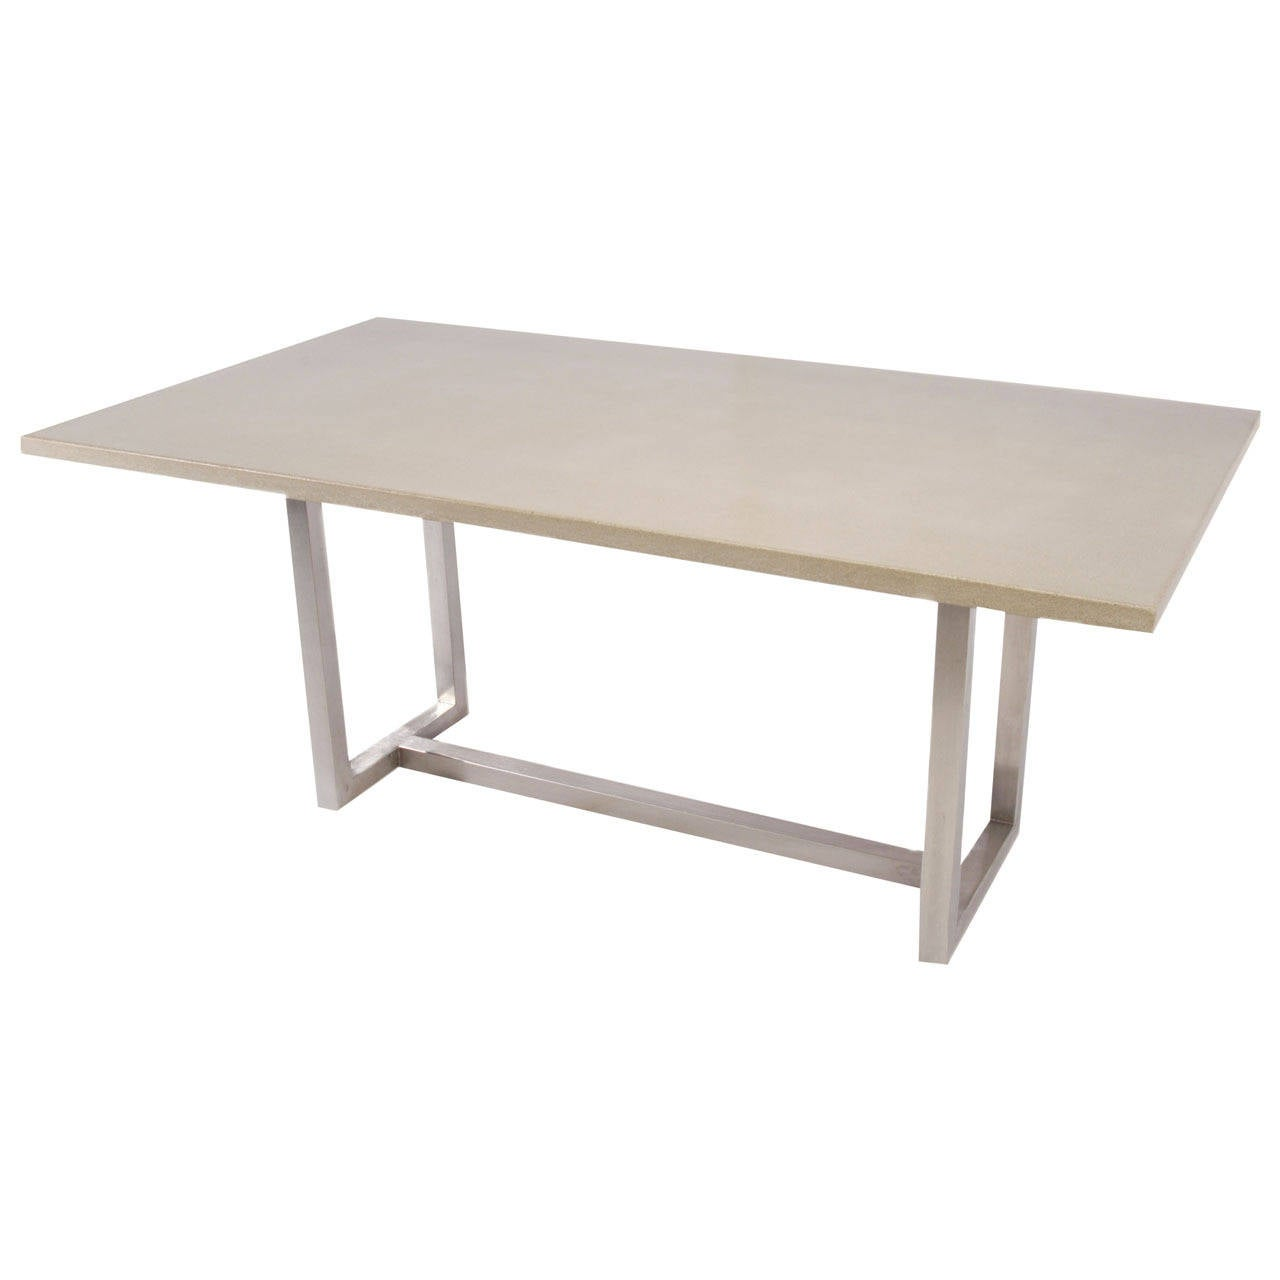 james de wulf vue dining table concrete and brushed stainless steel . james de wulf vue dining table concrete and brushed stainless